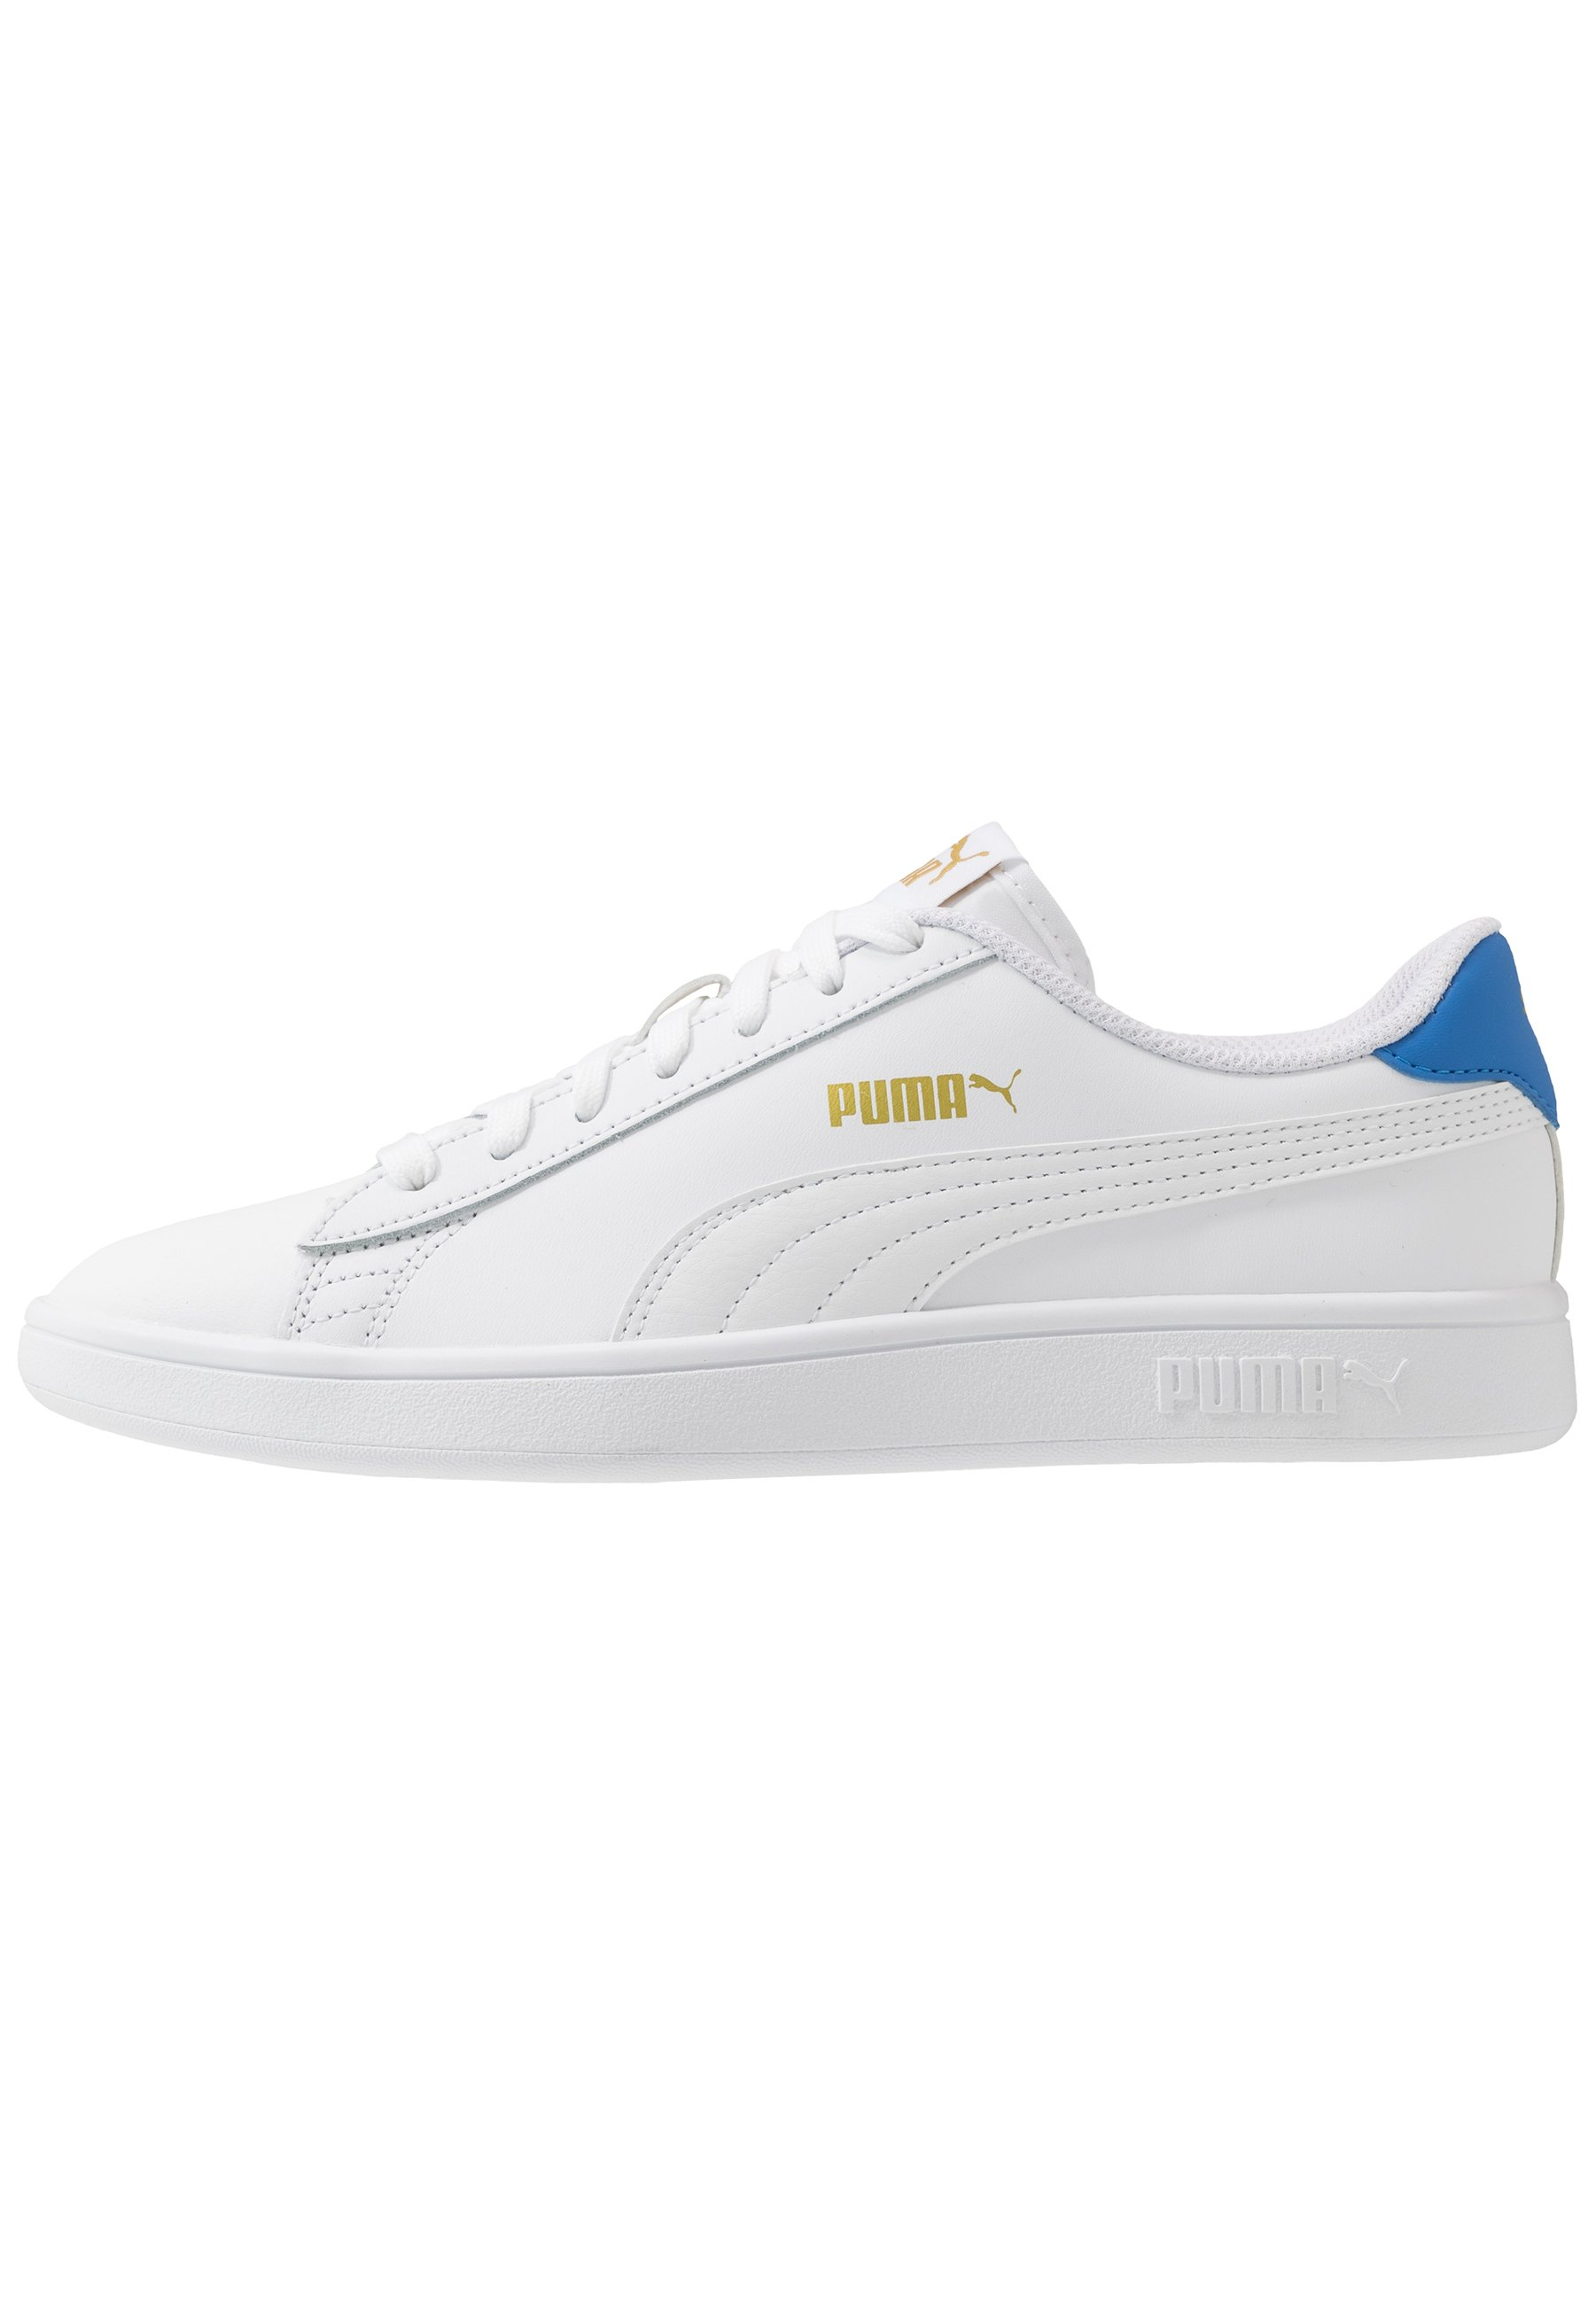 PUMA SMASH V2 L Sneakers basse whitepalace blueteam gold